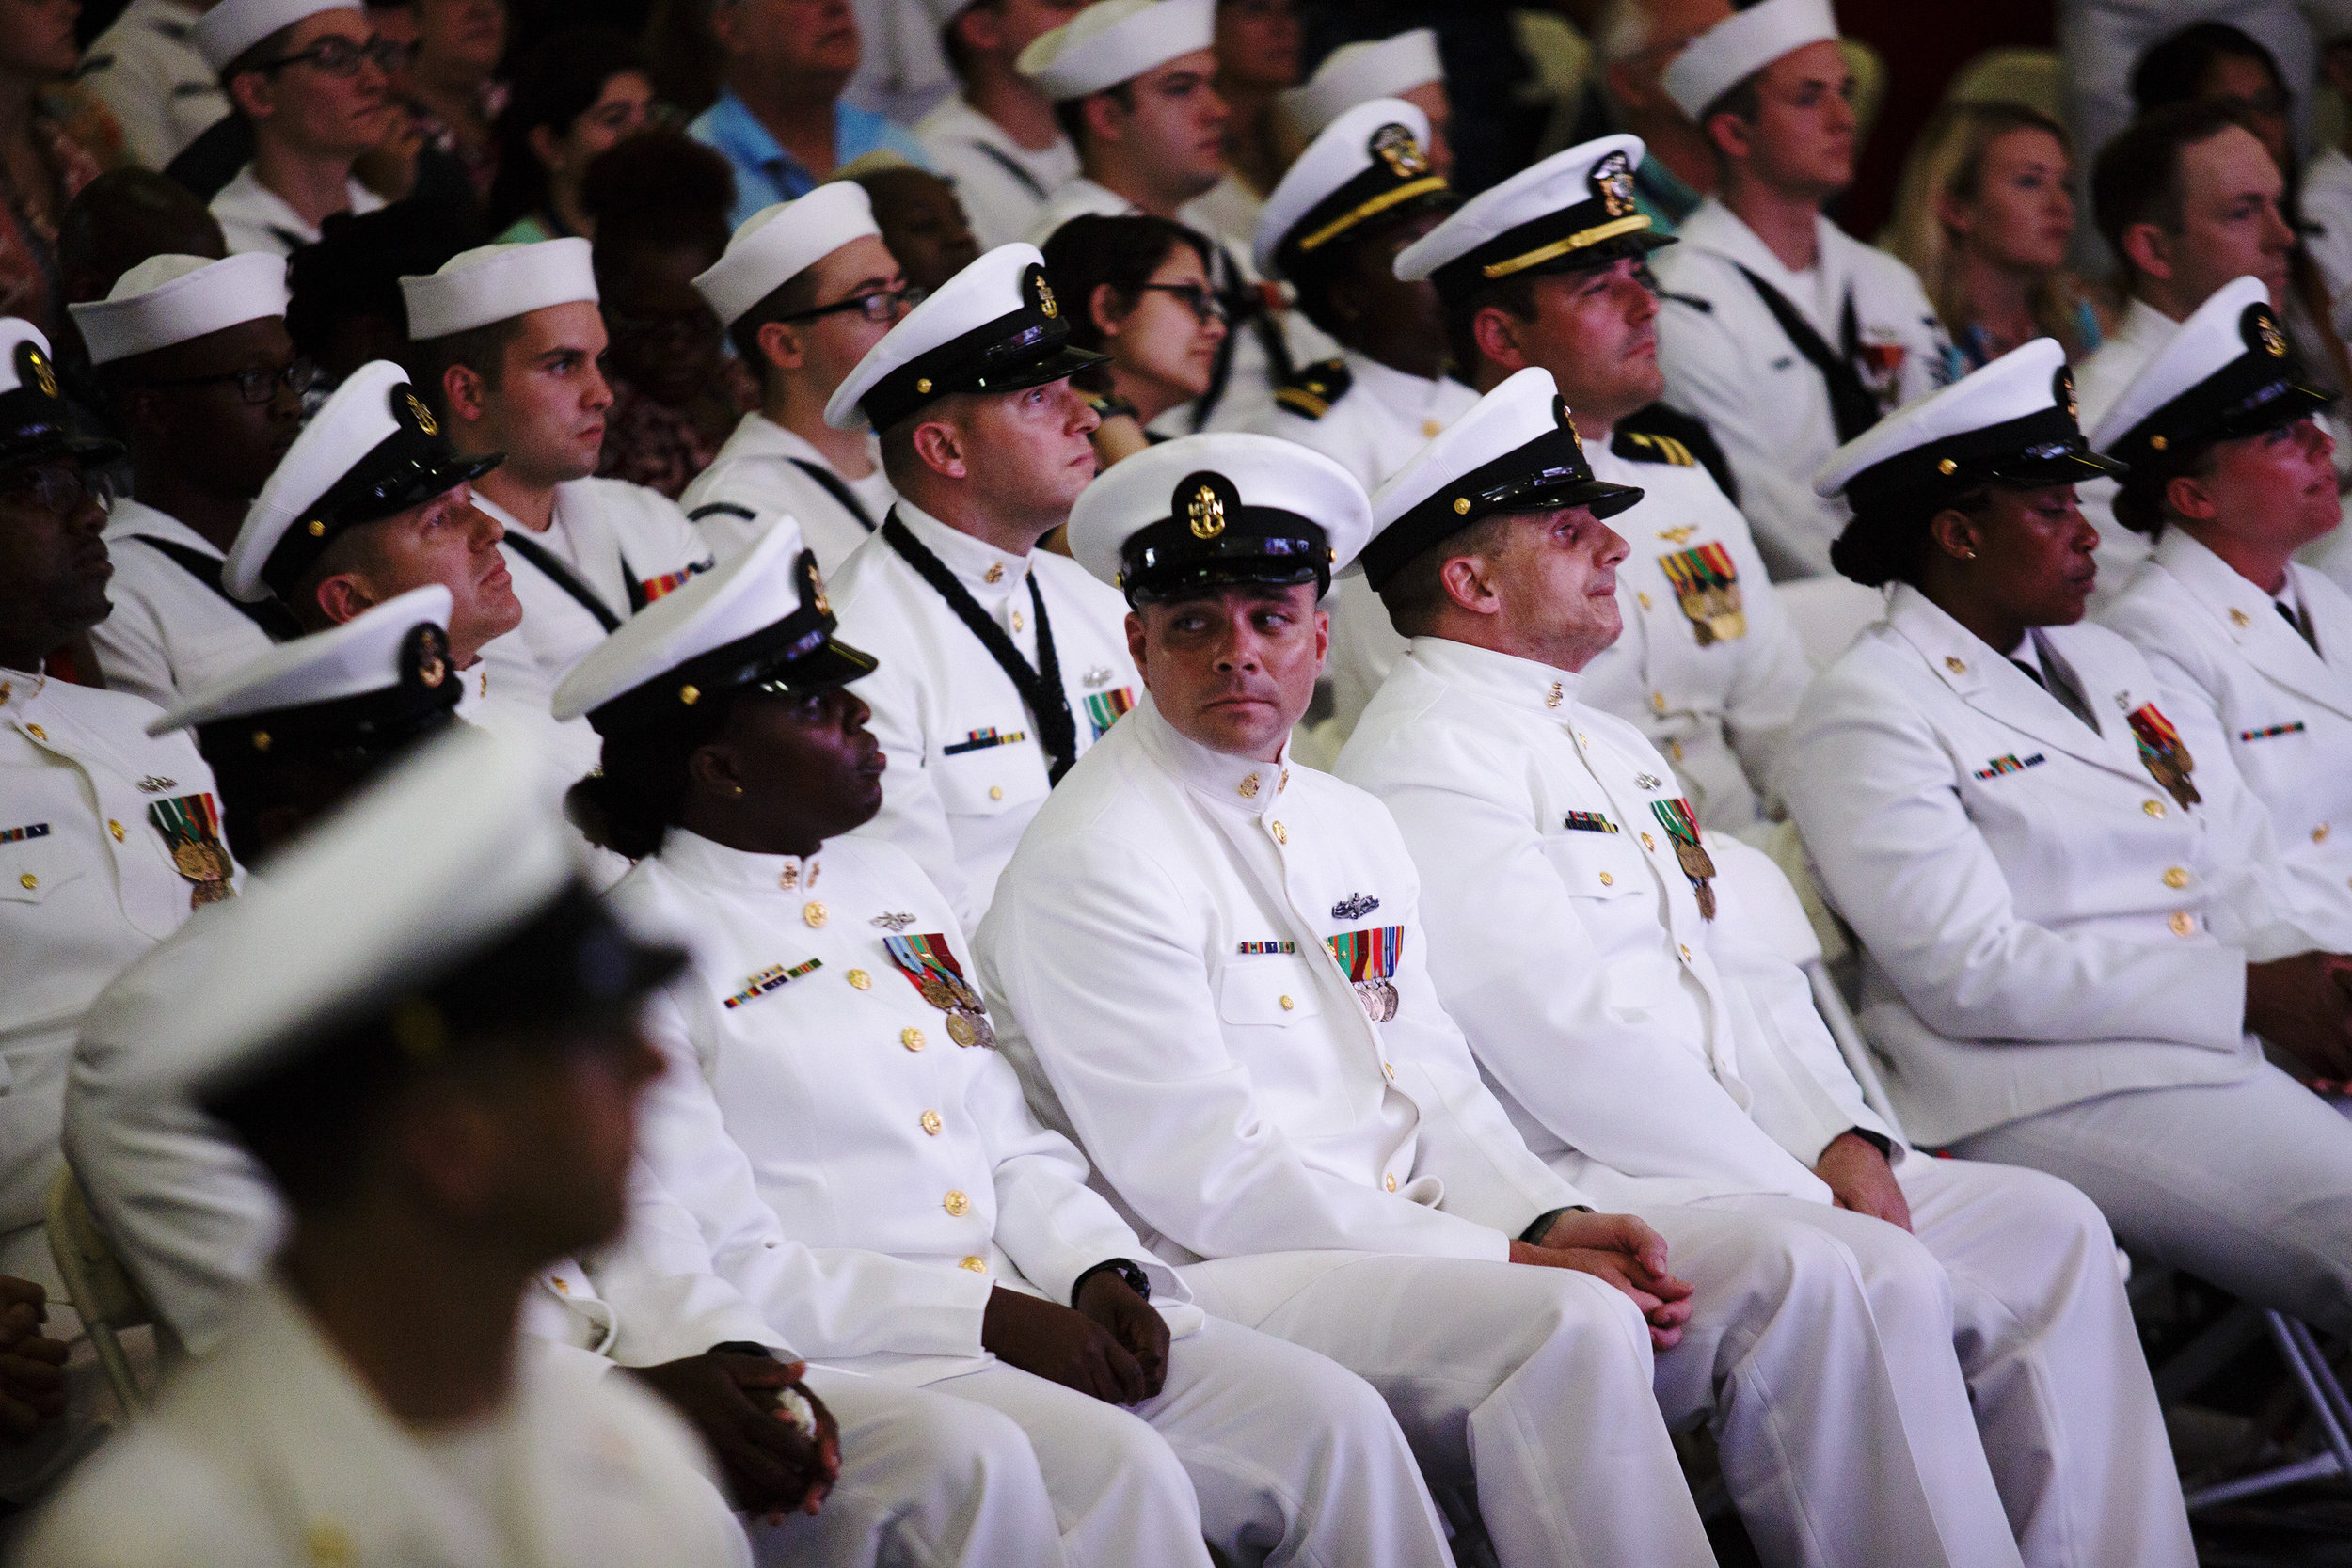 Members of the United States Navy watch the commissioning of the USS Gerald R. Ford (CVN 78) at the Naval Station Norfolk in Norfolk, Virginia. A crowd of nearly 10,000 individuals gathered to watch the commissioning ceremony for the Navy's newest aircraft carrier.